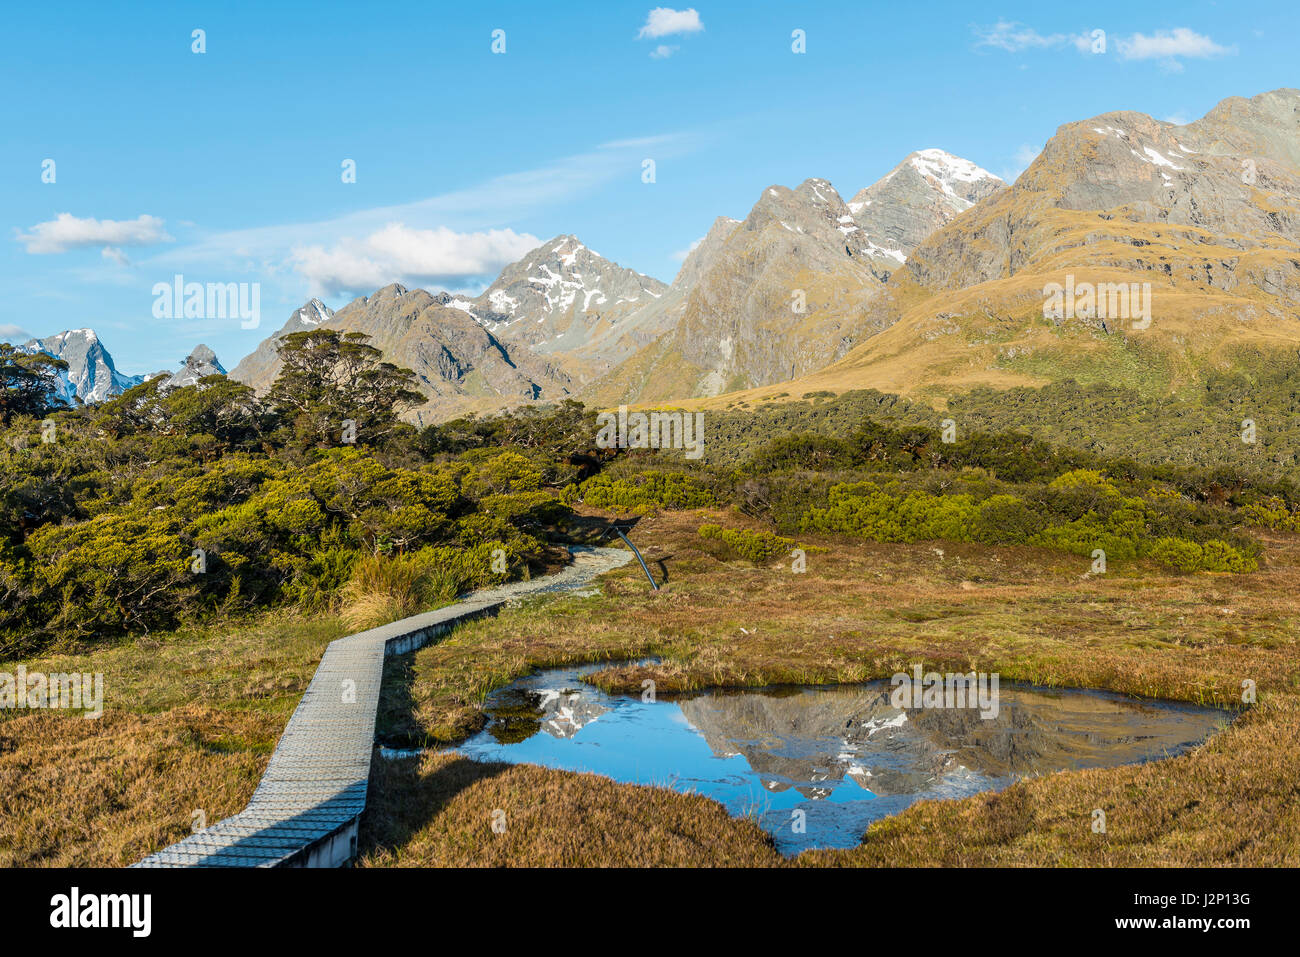 Bridge over Hochmoor, mountain lake with reflection of the Ailsa Mountains, Key Summit Track, Fiordland National - Stock Image